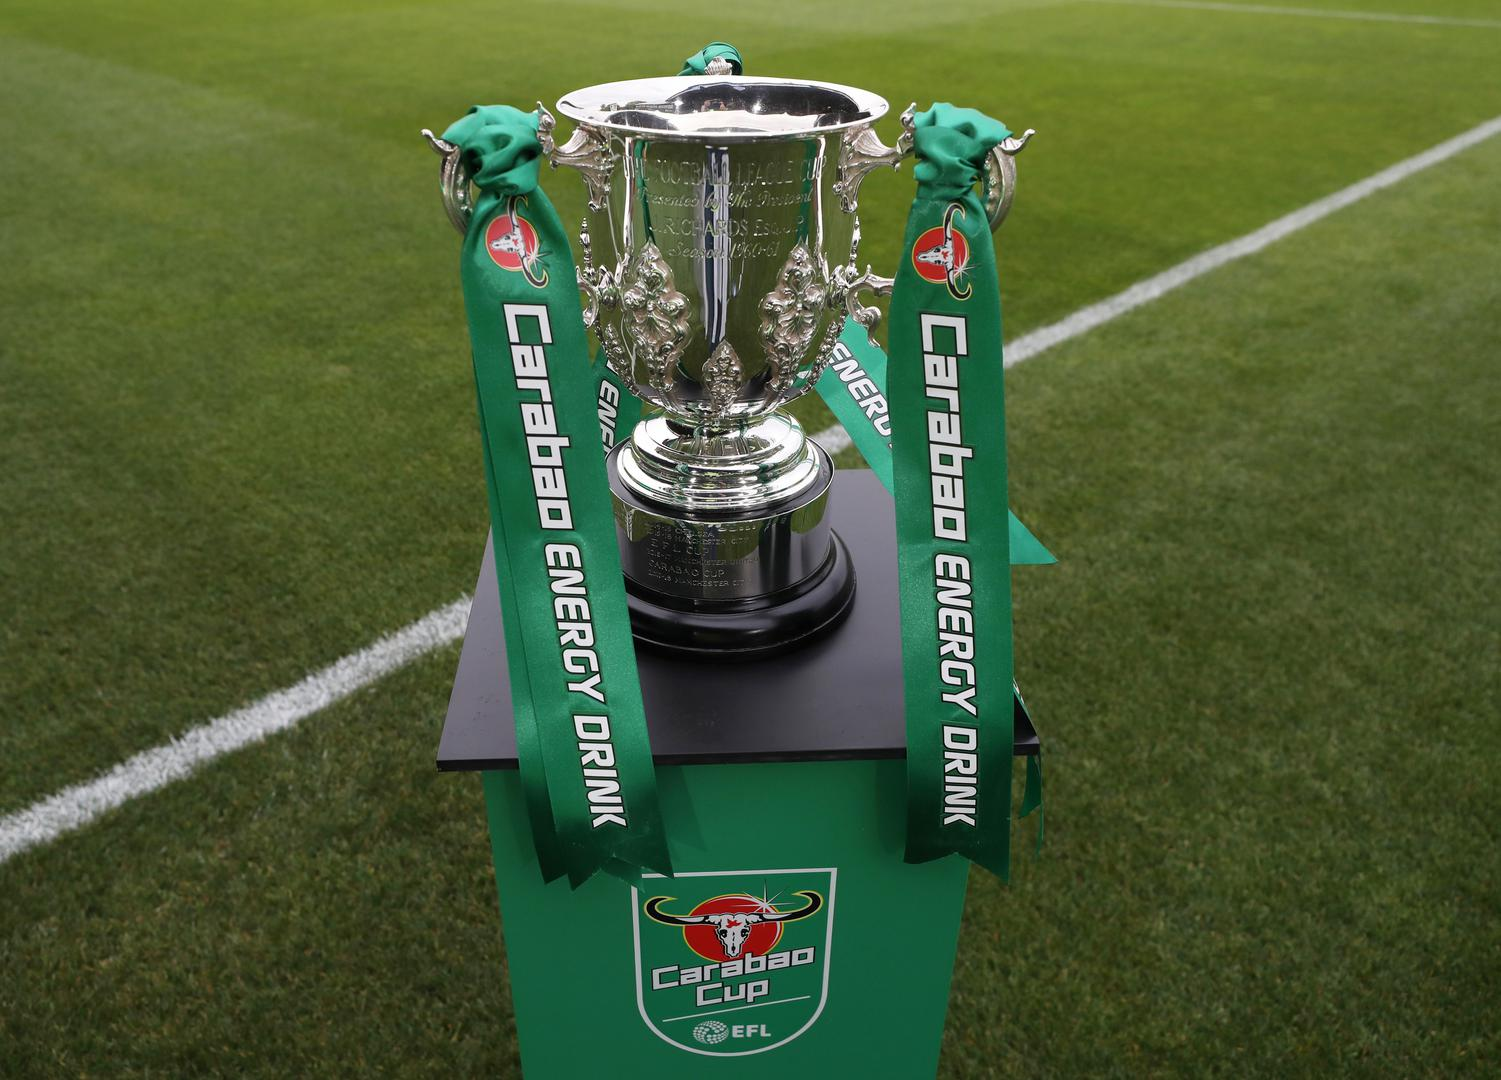 The Carabao Cup trophy on a platform.